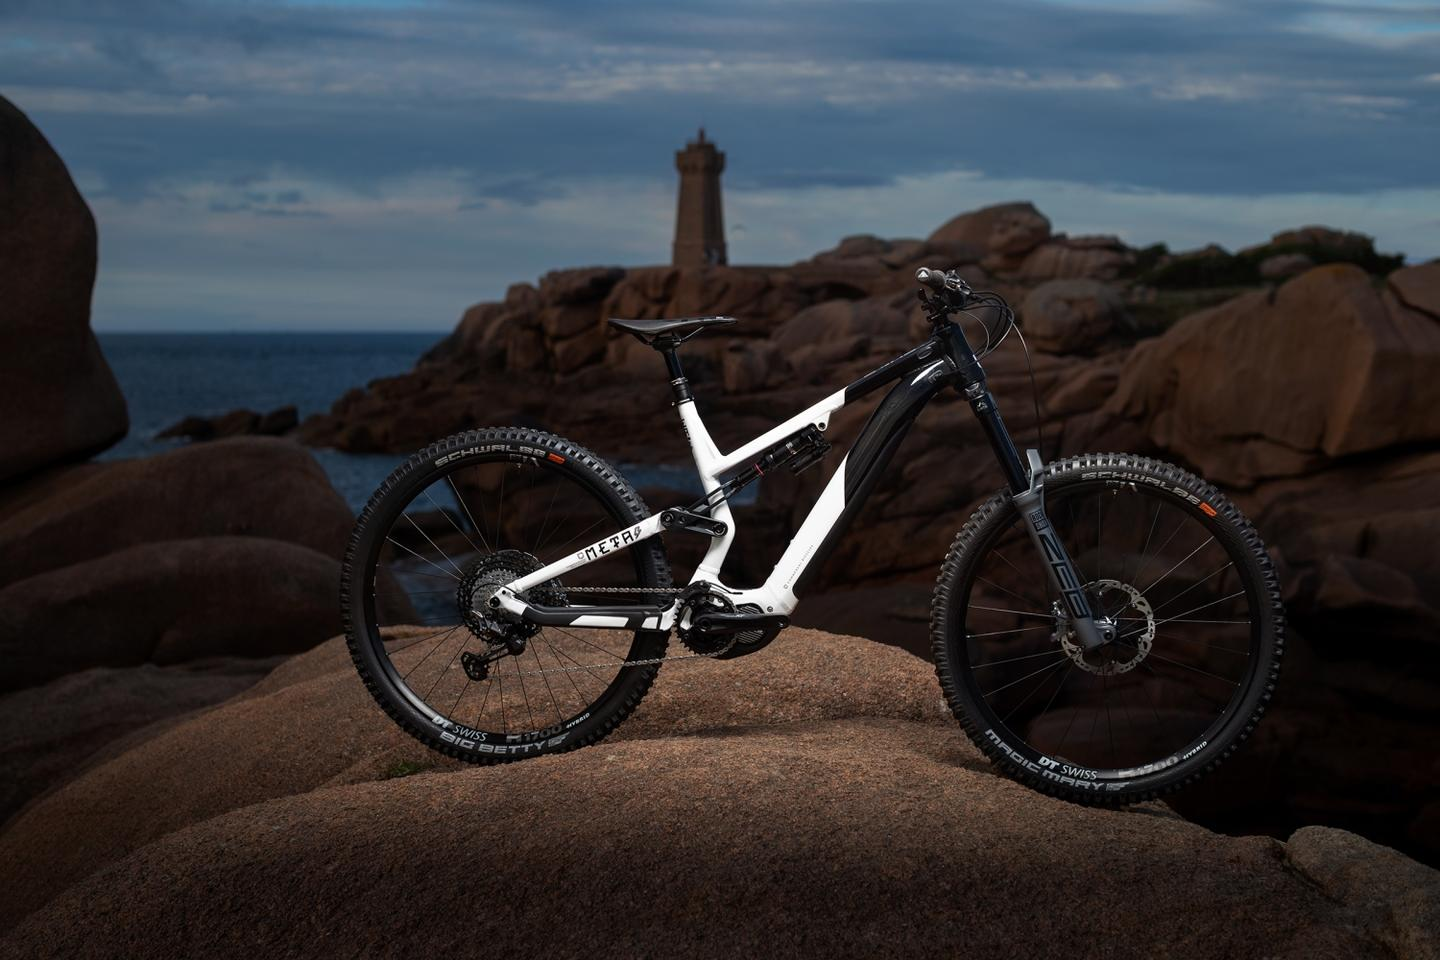 The 2021 Commencal Meta Power ebike features the new Shimano EP8 motor